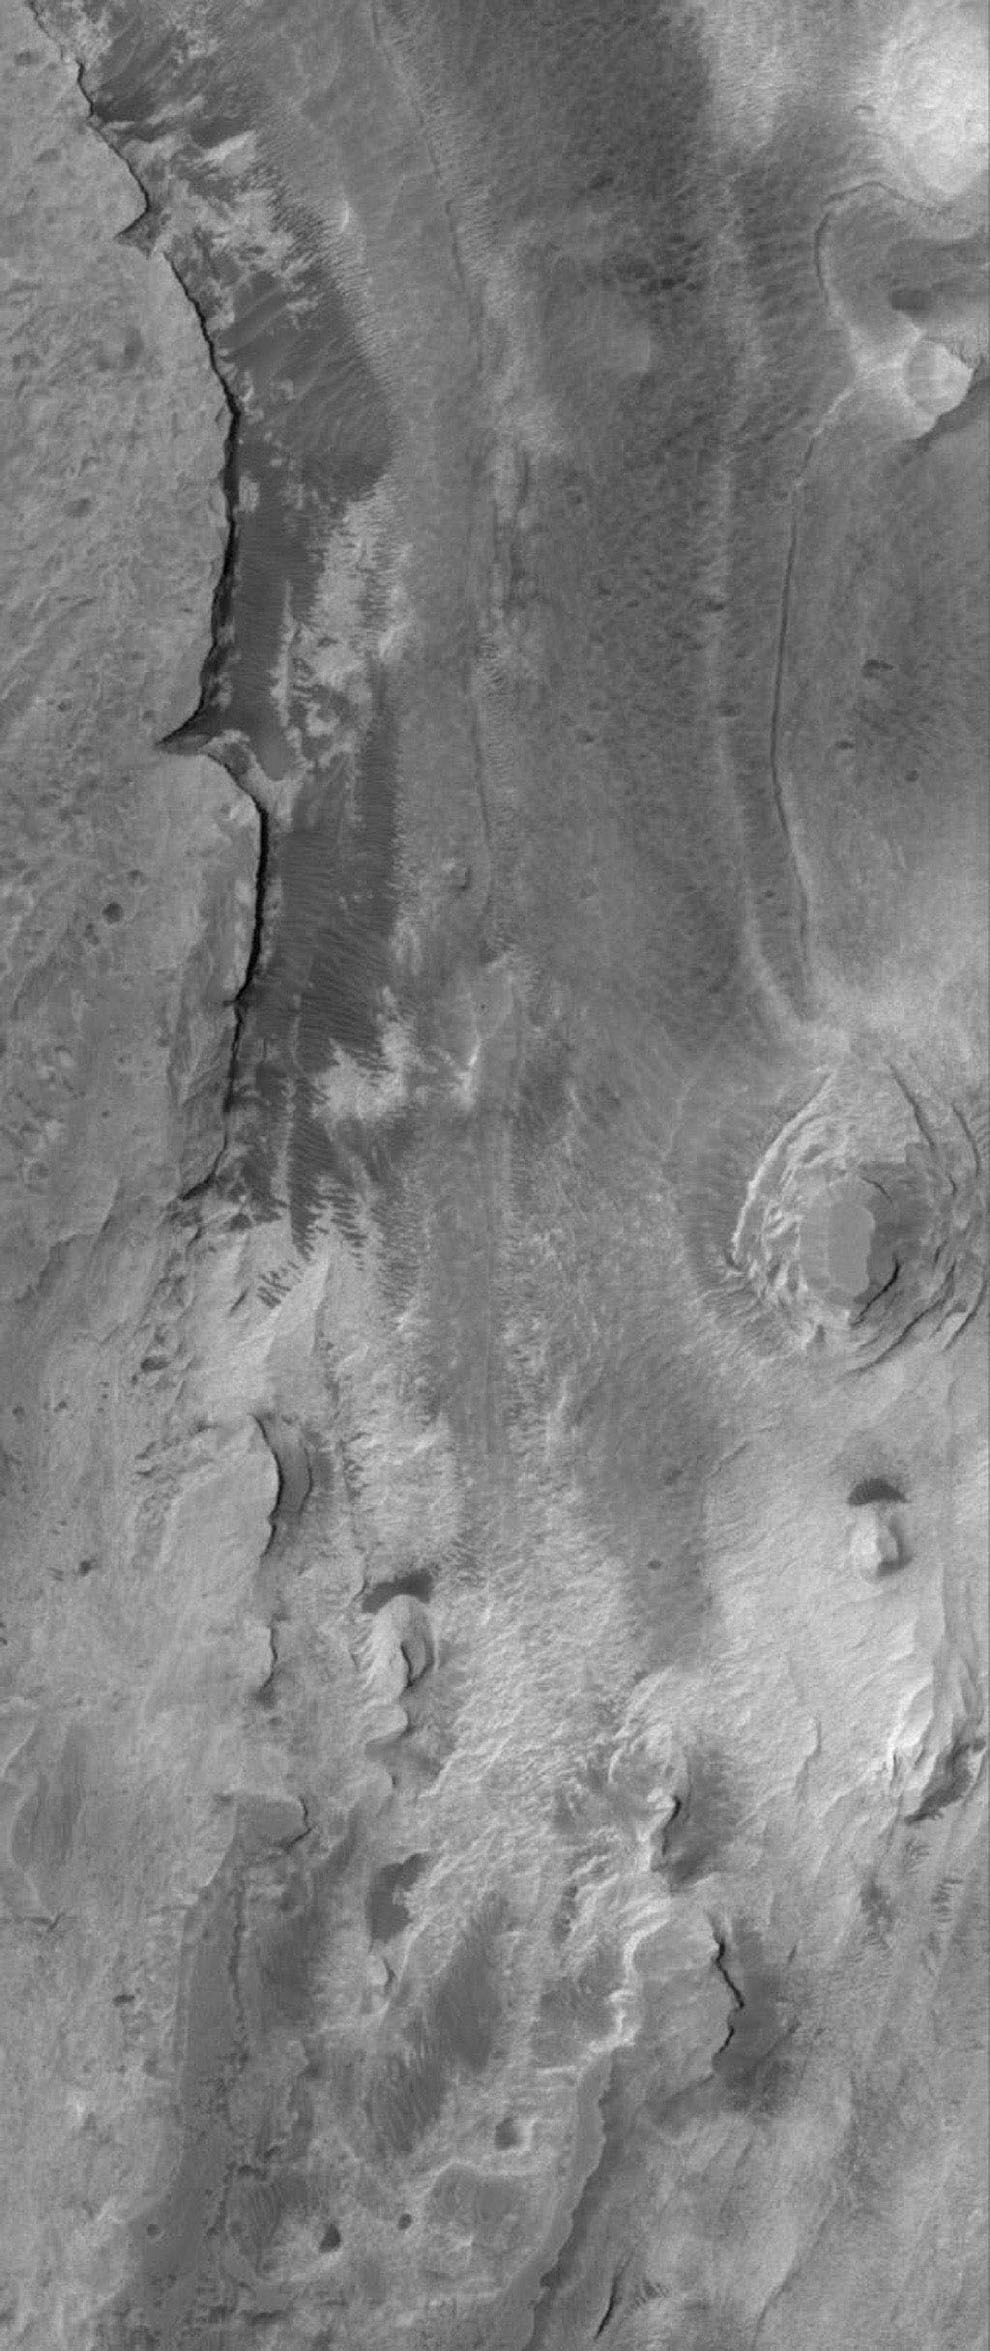 NASA's Mars Global Surveyor shows layered, light-toned exposures of probable sedimentary rock in Iani Chaos on Mars.